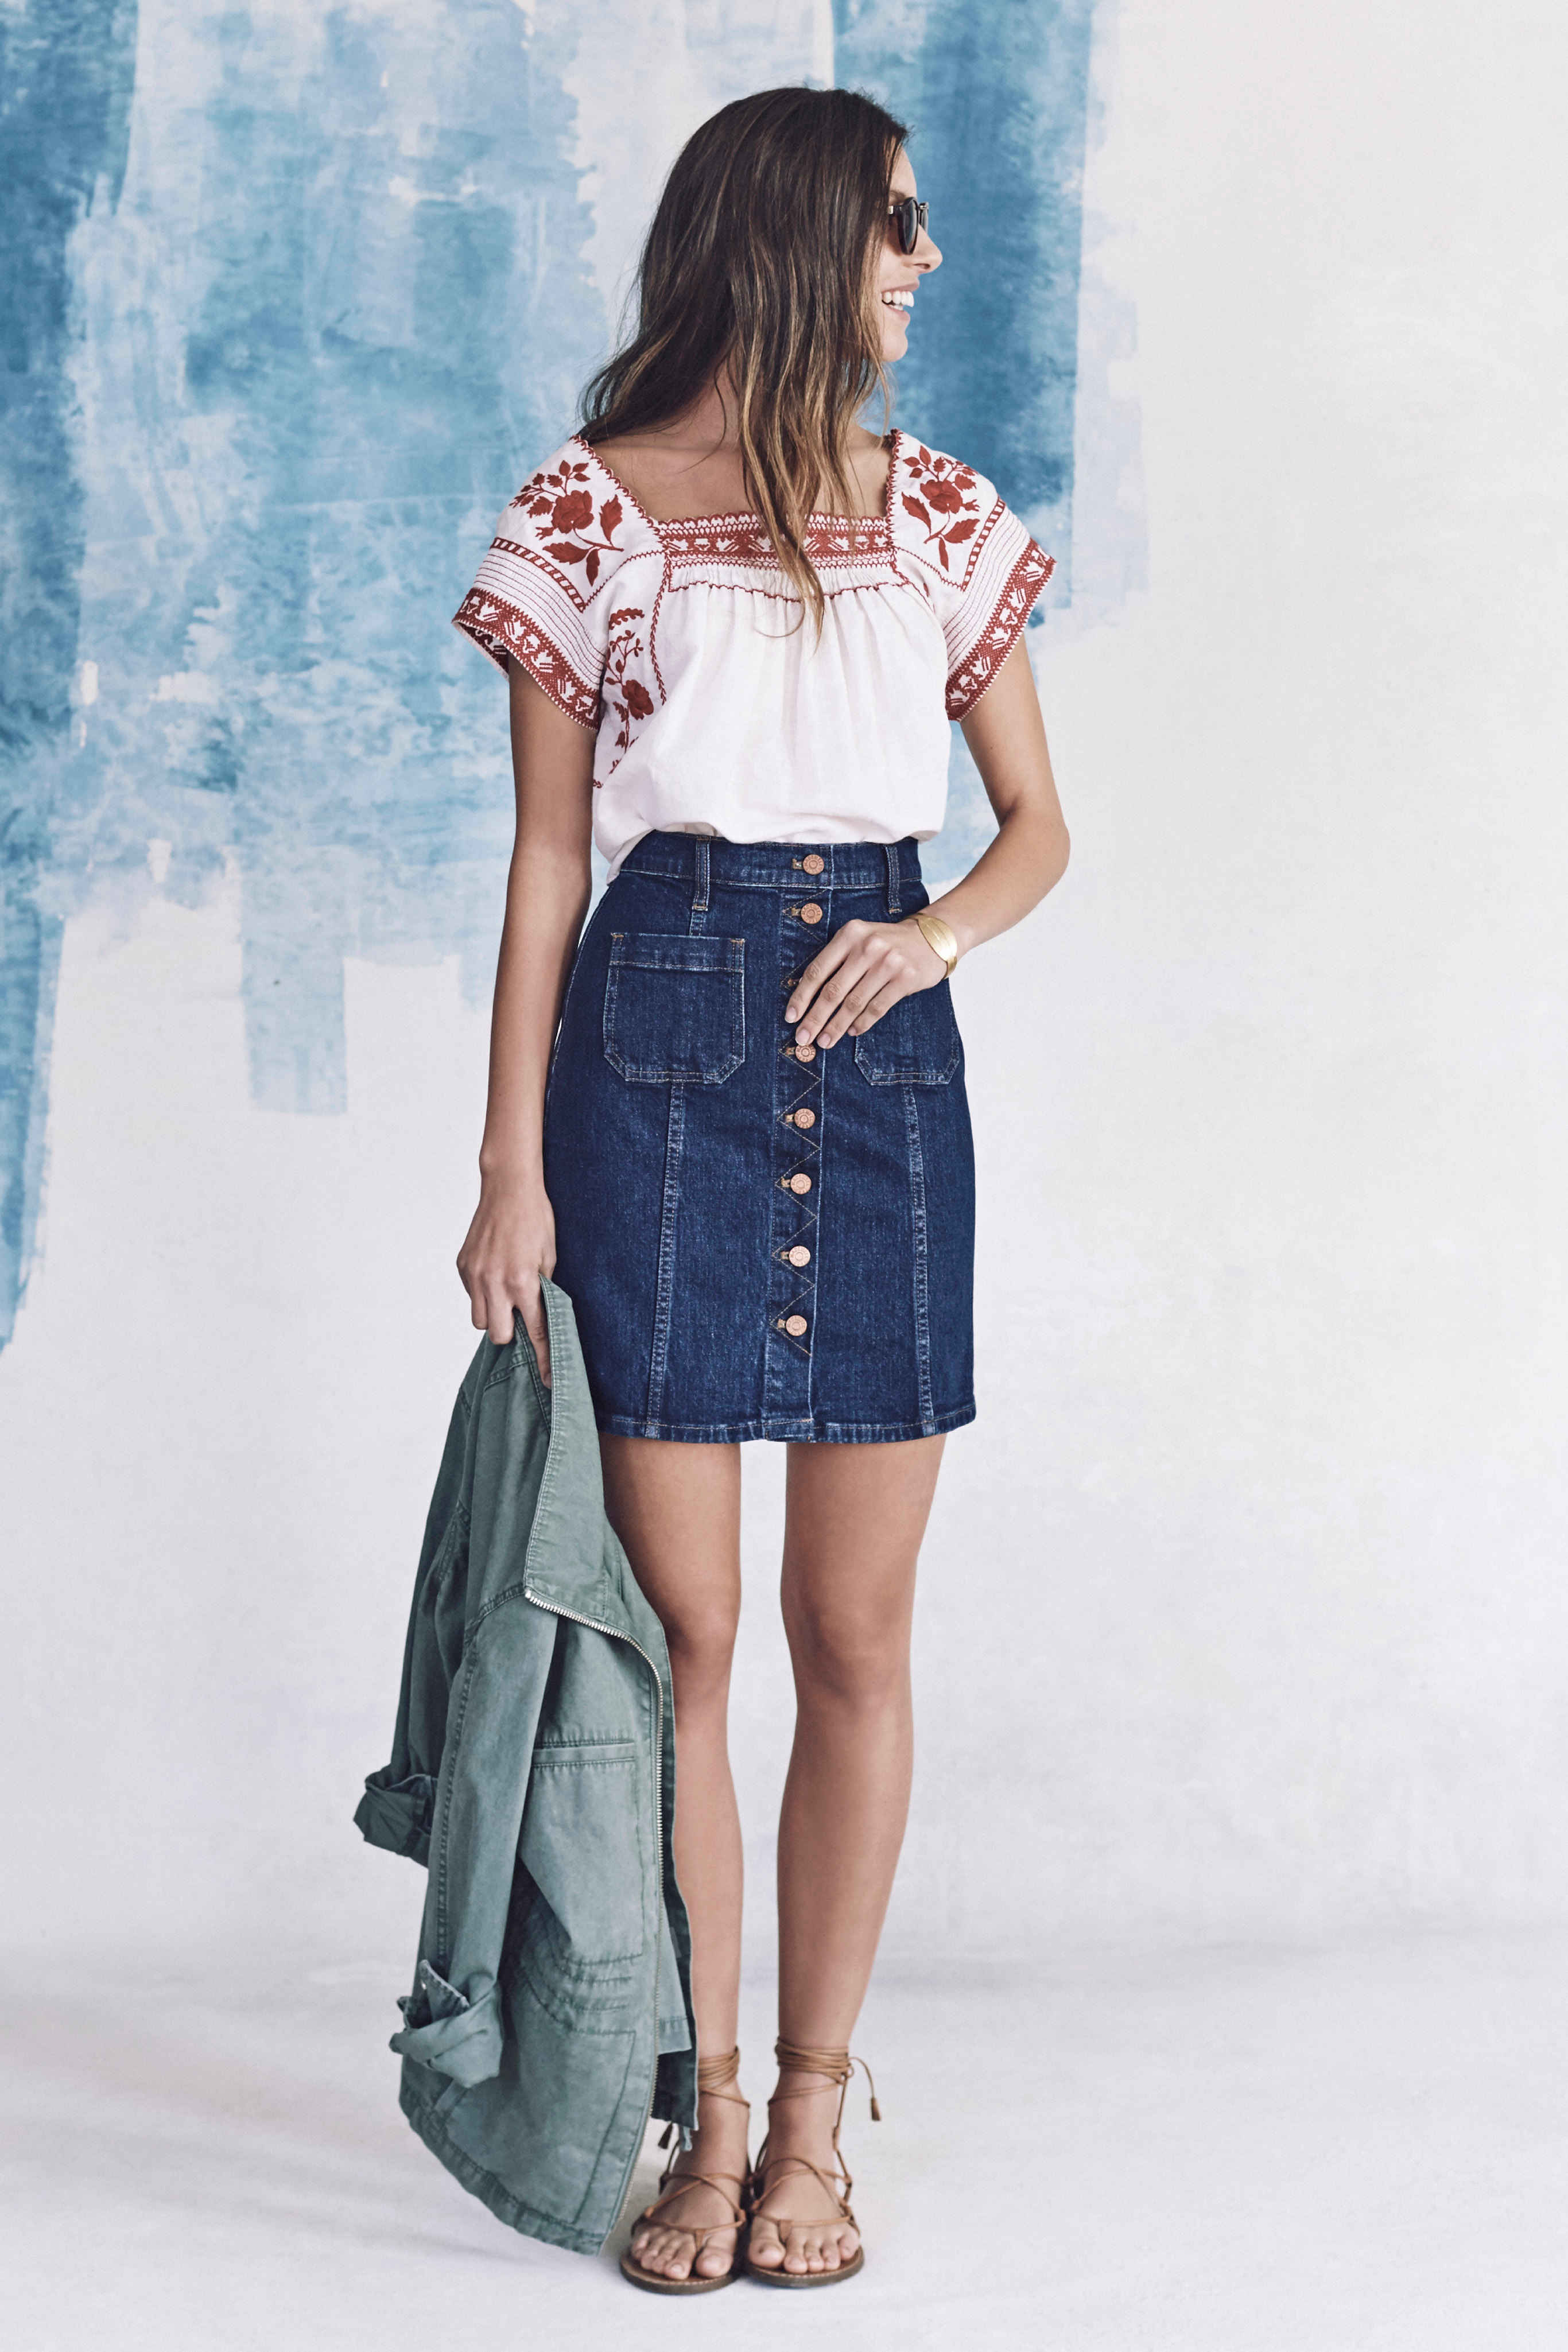 Madewell just released their spring 2016 collection, and trust me, you are going to be clamoring for every single piece. It's just so wearable. - Madewell Spring 2016 Lookbook - Denim Skirt and Prairie Blouse